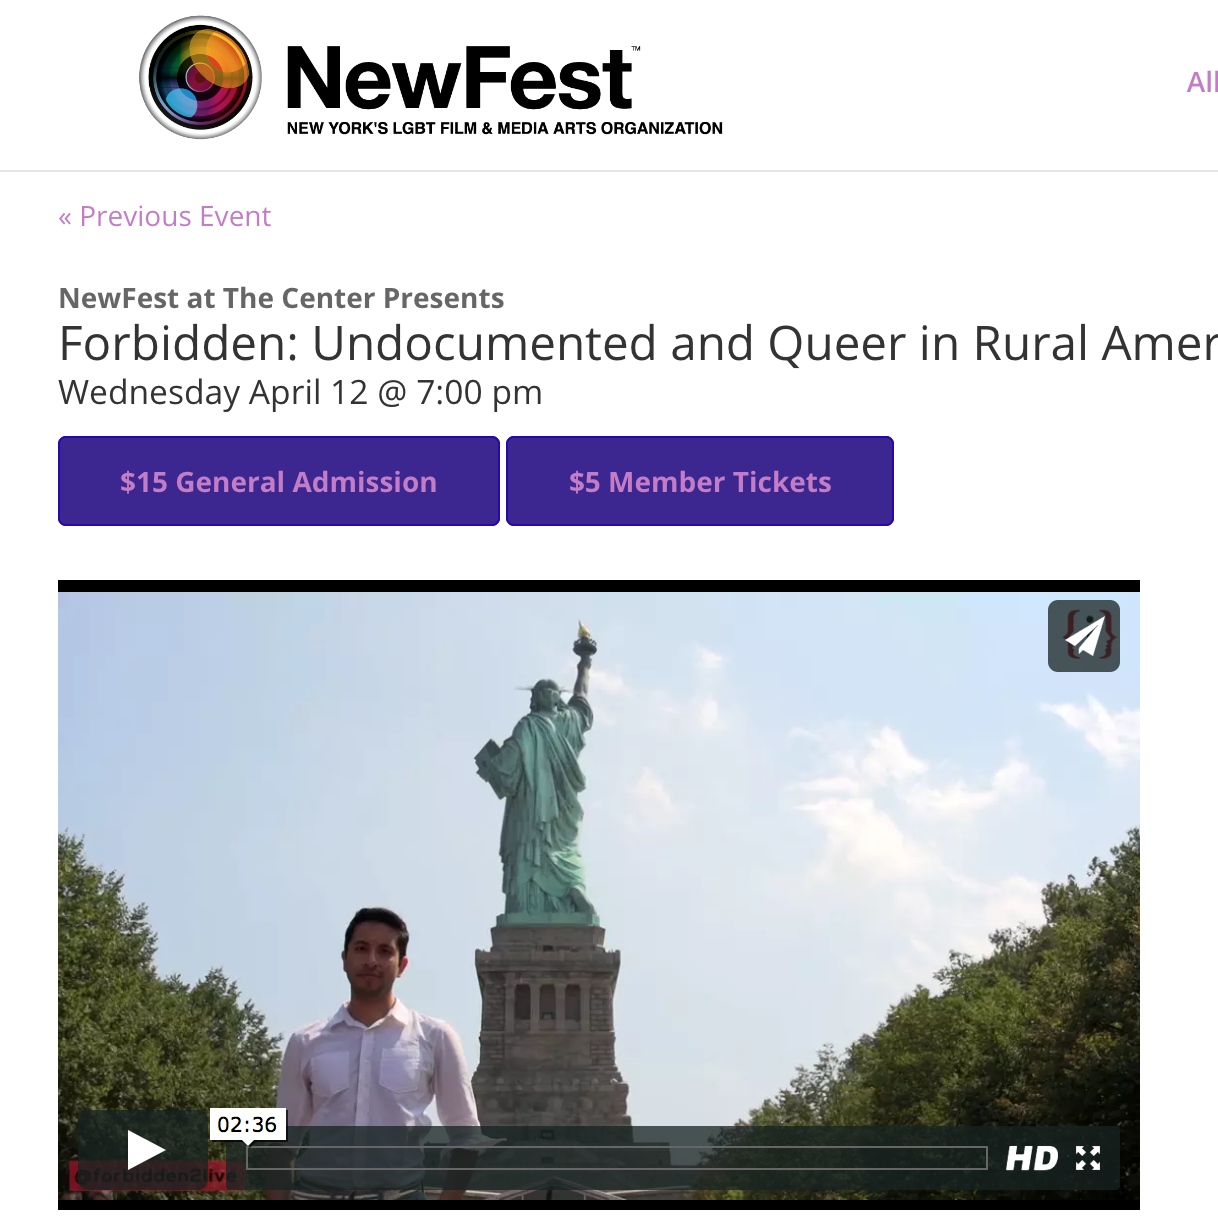 Newfest at The Center